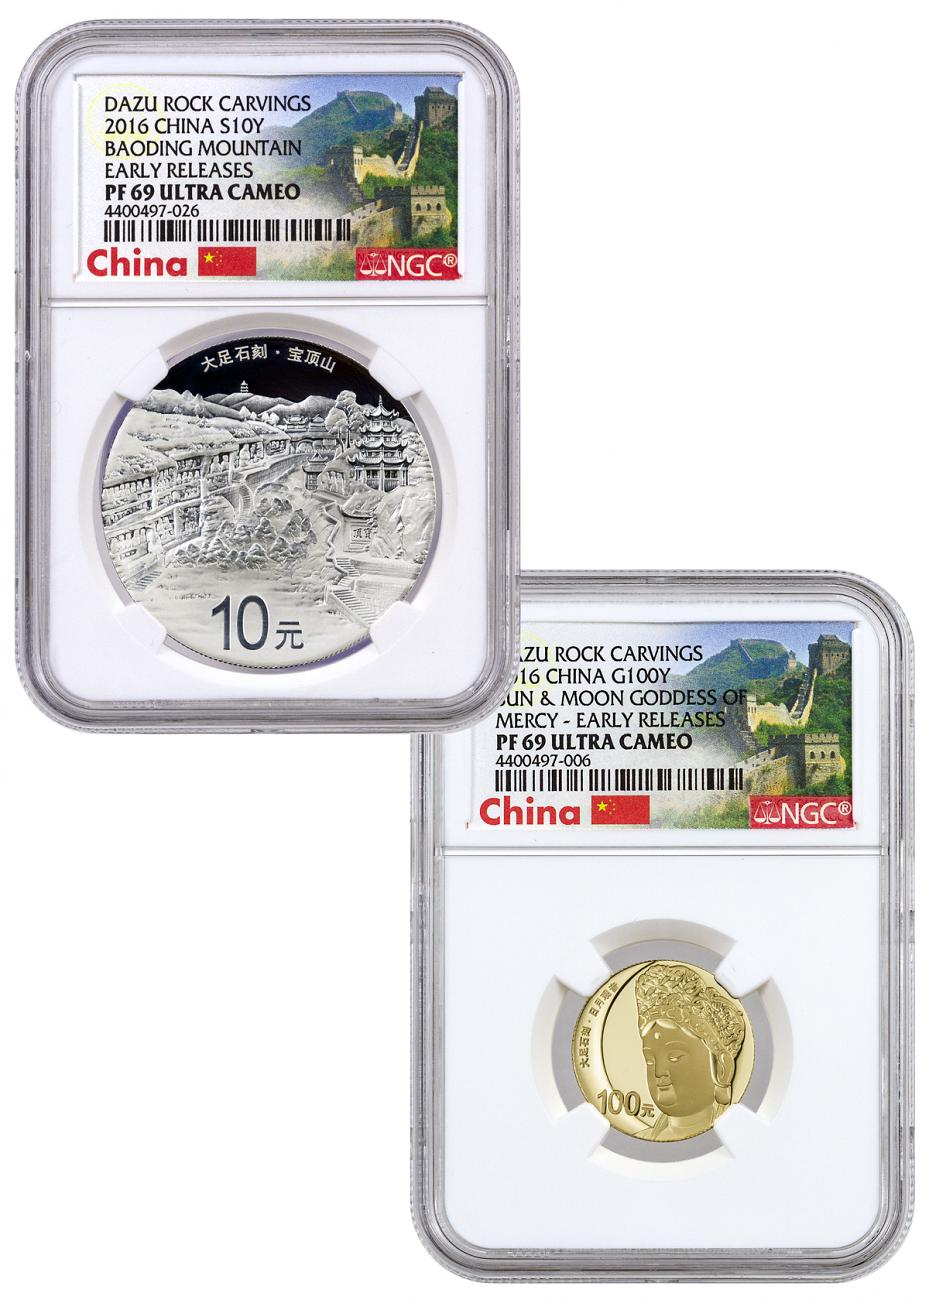 2016 China Proof Gold and Silver Dazu Rock Carvings - Set of 2 Coins - NGC PF69 UC Early Releases (Exclusive Great Wall Label)